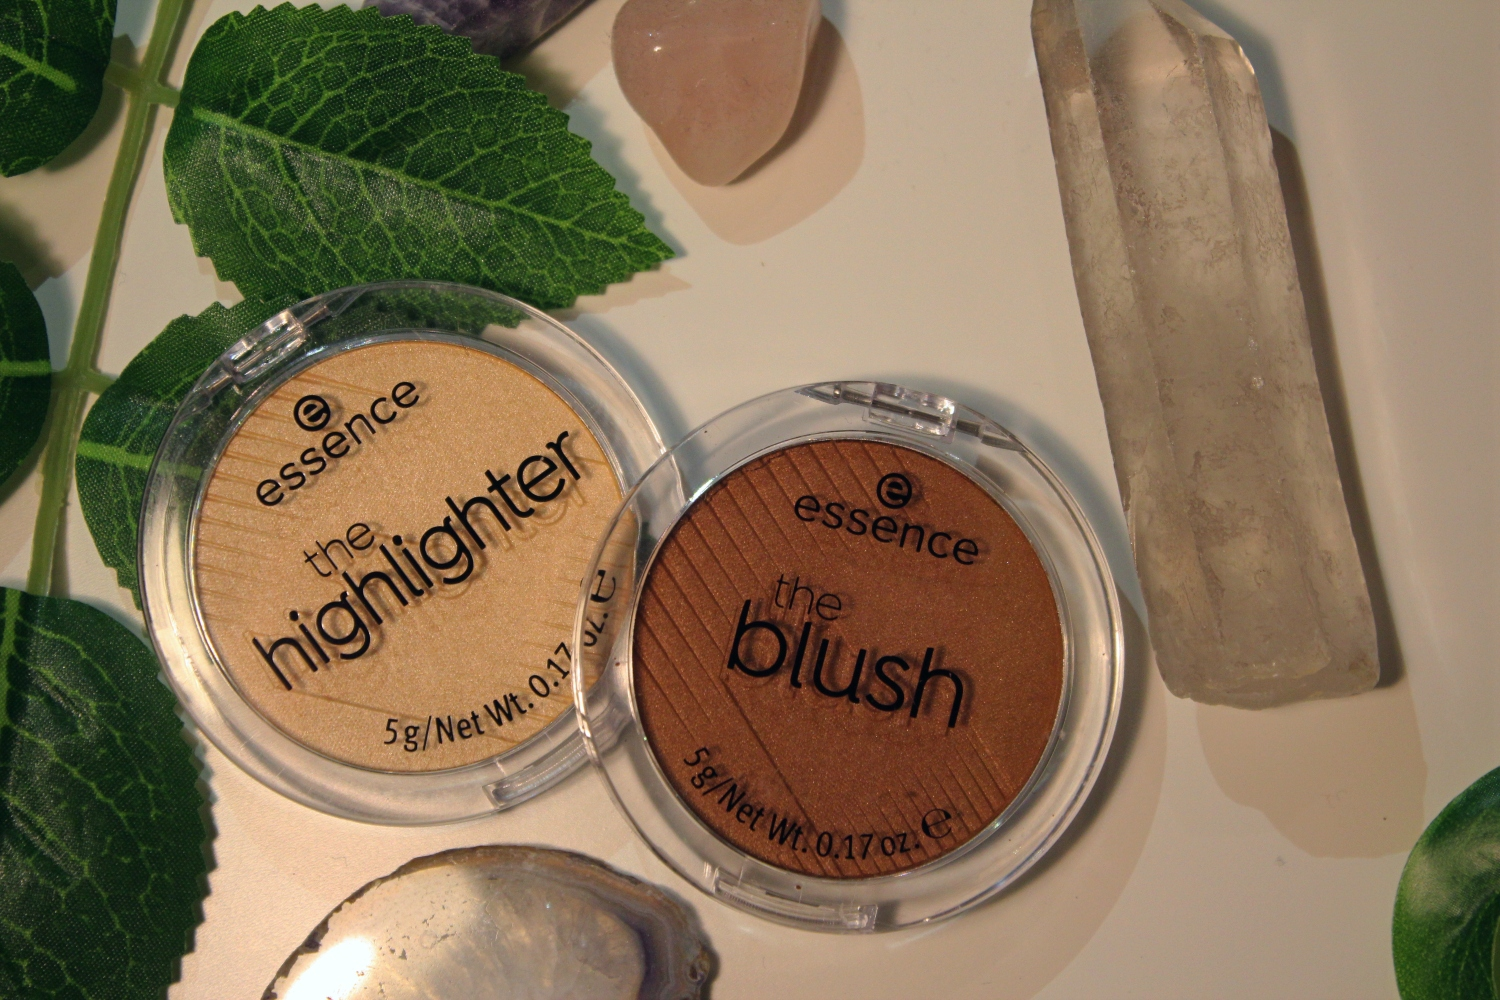 Pictured are the blush and the highlighter.